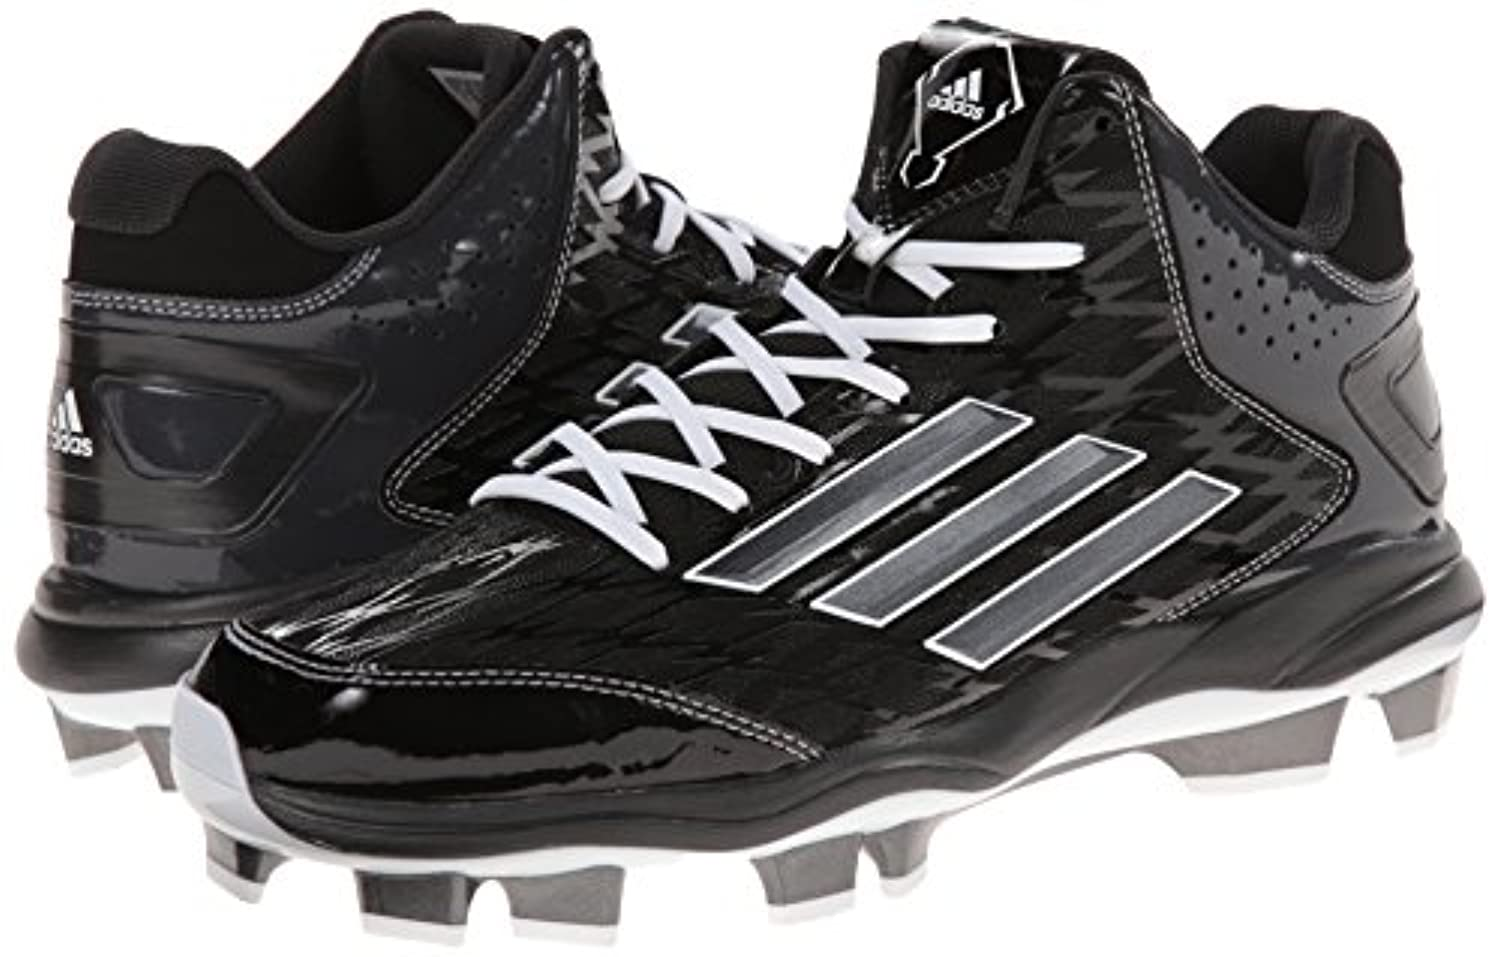 adidas Performance Men's PowerAlley 2 Mid Baseball Cleat, Black/Carbon, 10 M US